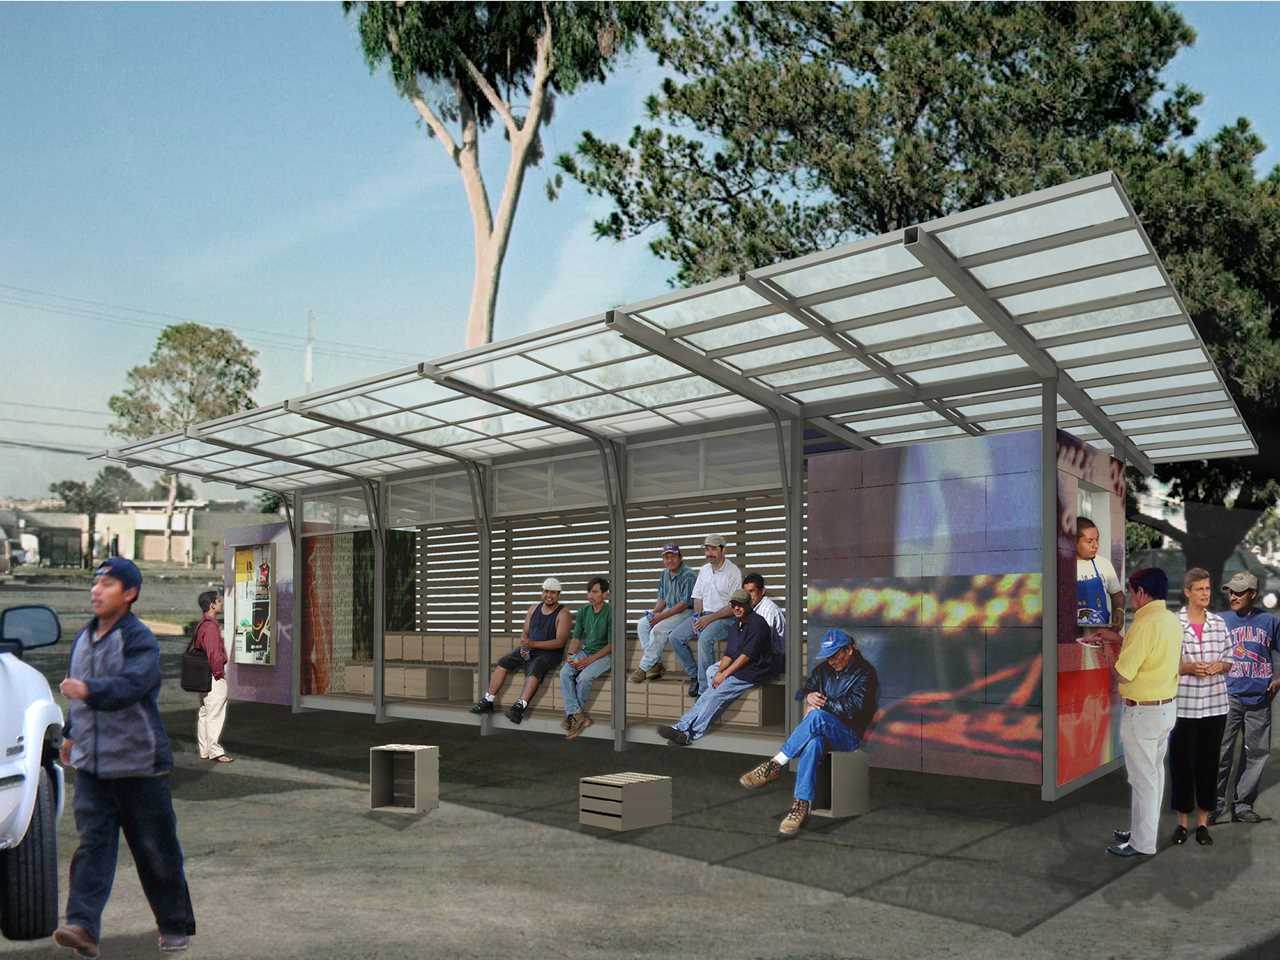 """Global Holcim Awards """"Innovation"""" prize 2009: Self-contained day labor station, San Francisco, USA"""